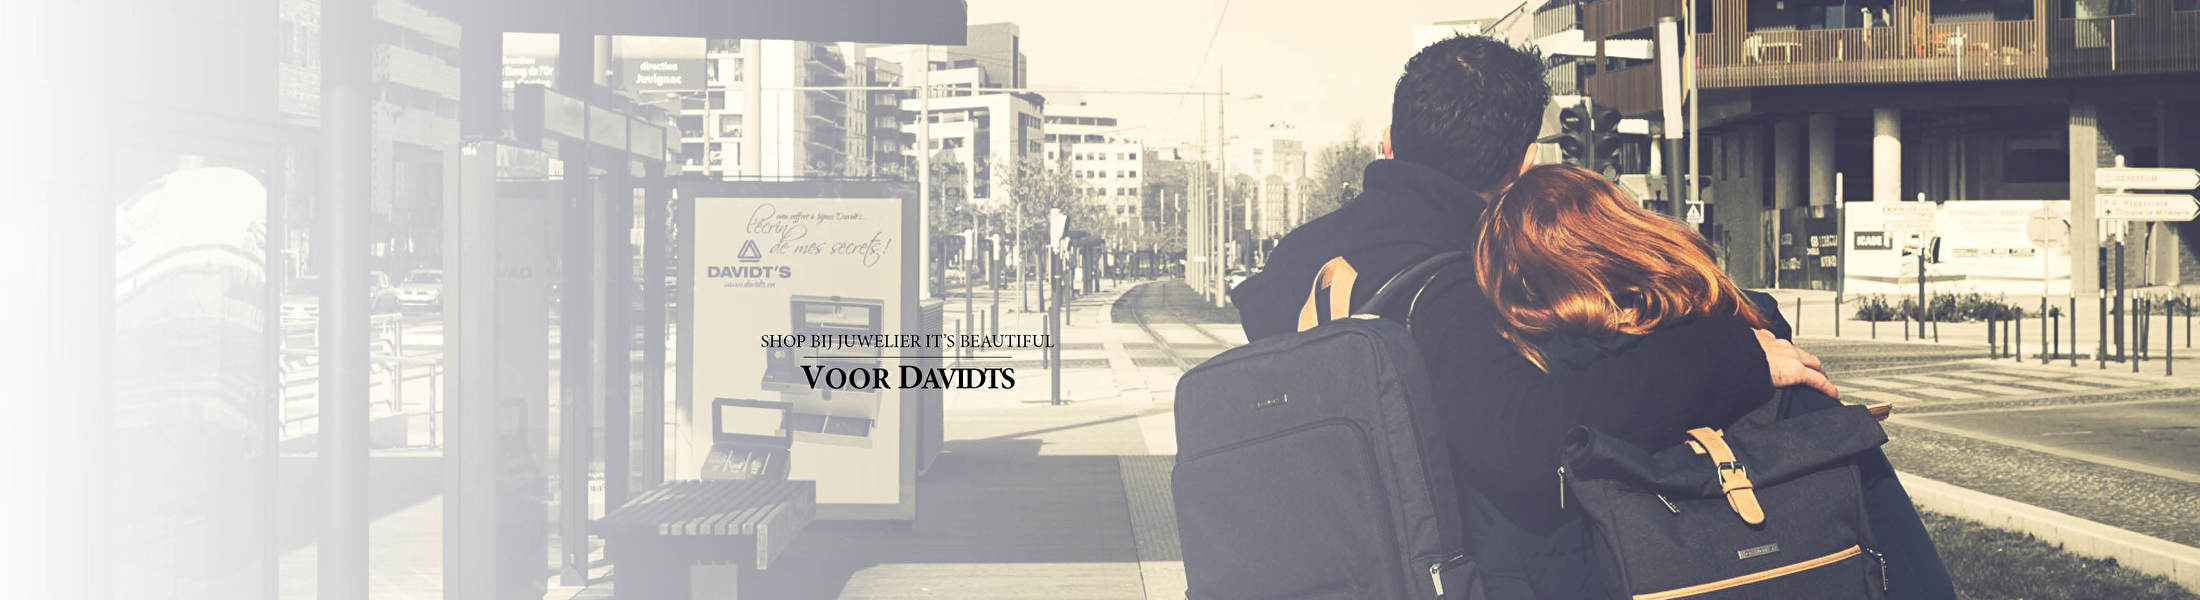 Shop bij juwelier It's Beautiful voor DAVIDTS